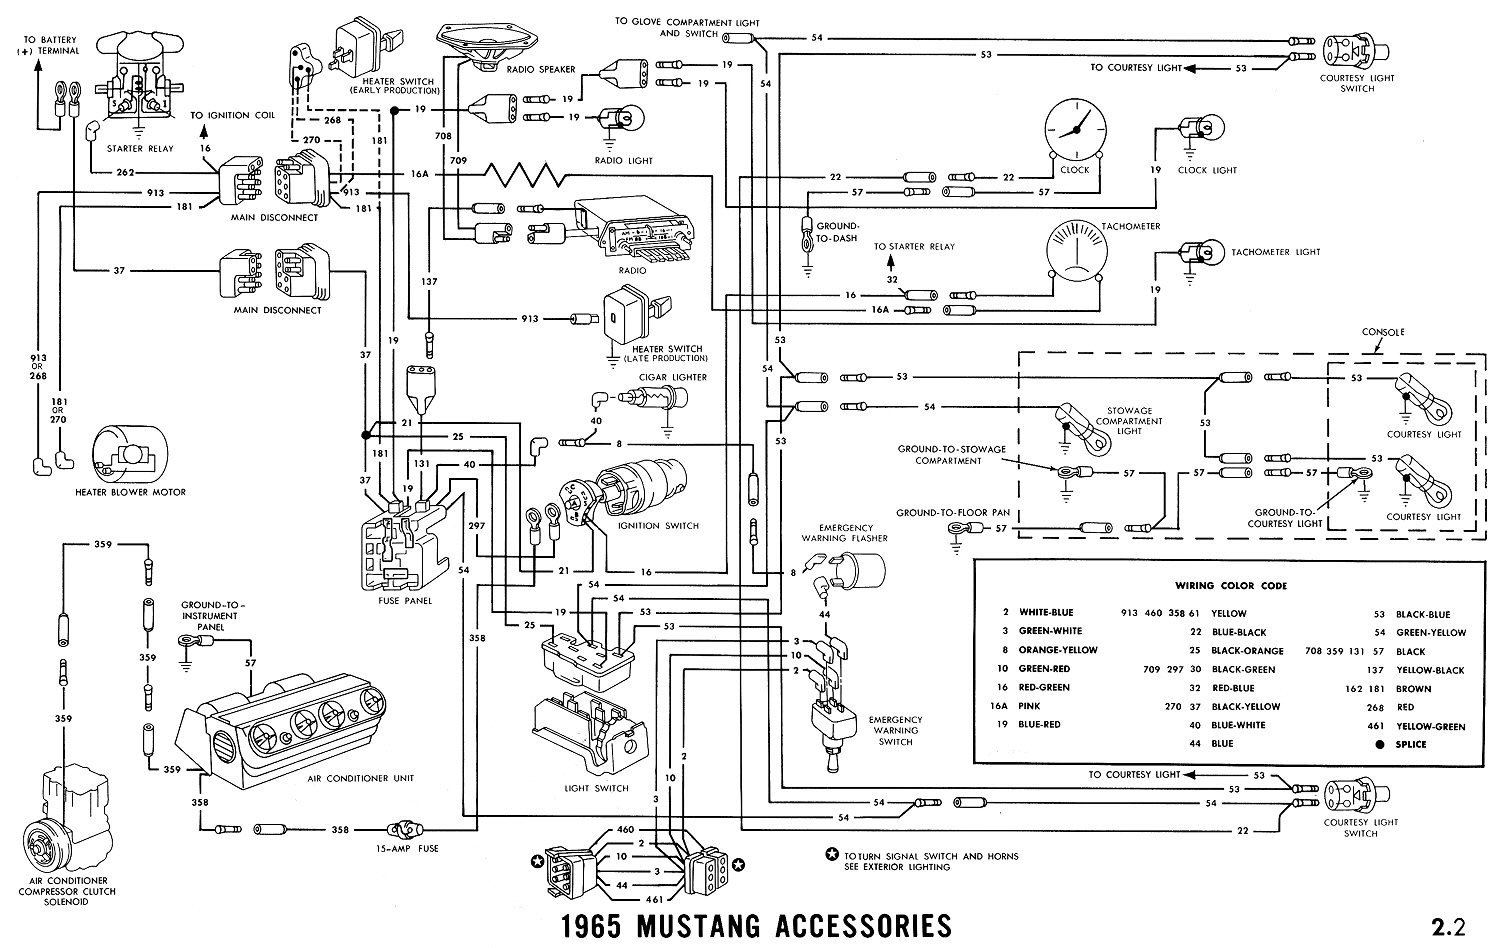 1965i 1965 mustang wiring diagrams average joe restoration 1965 mustang complete wiring harness at suagrazia.org